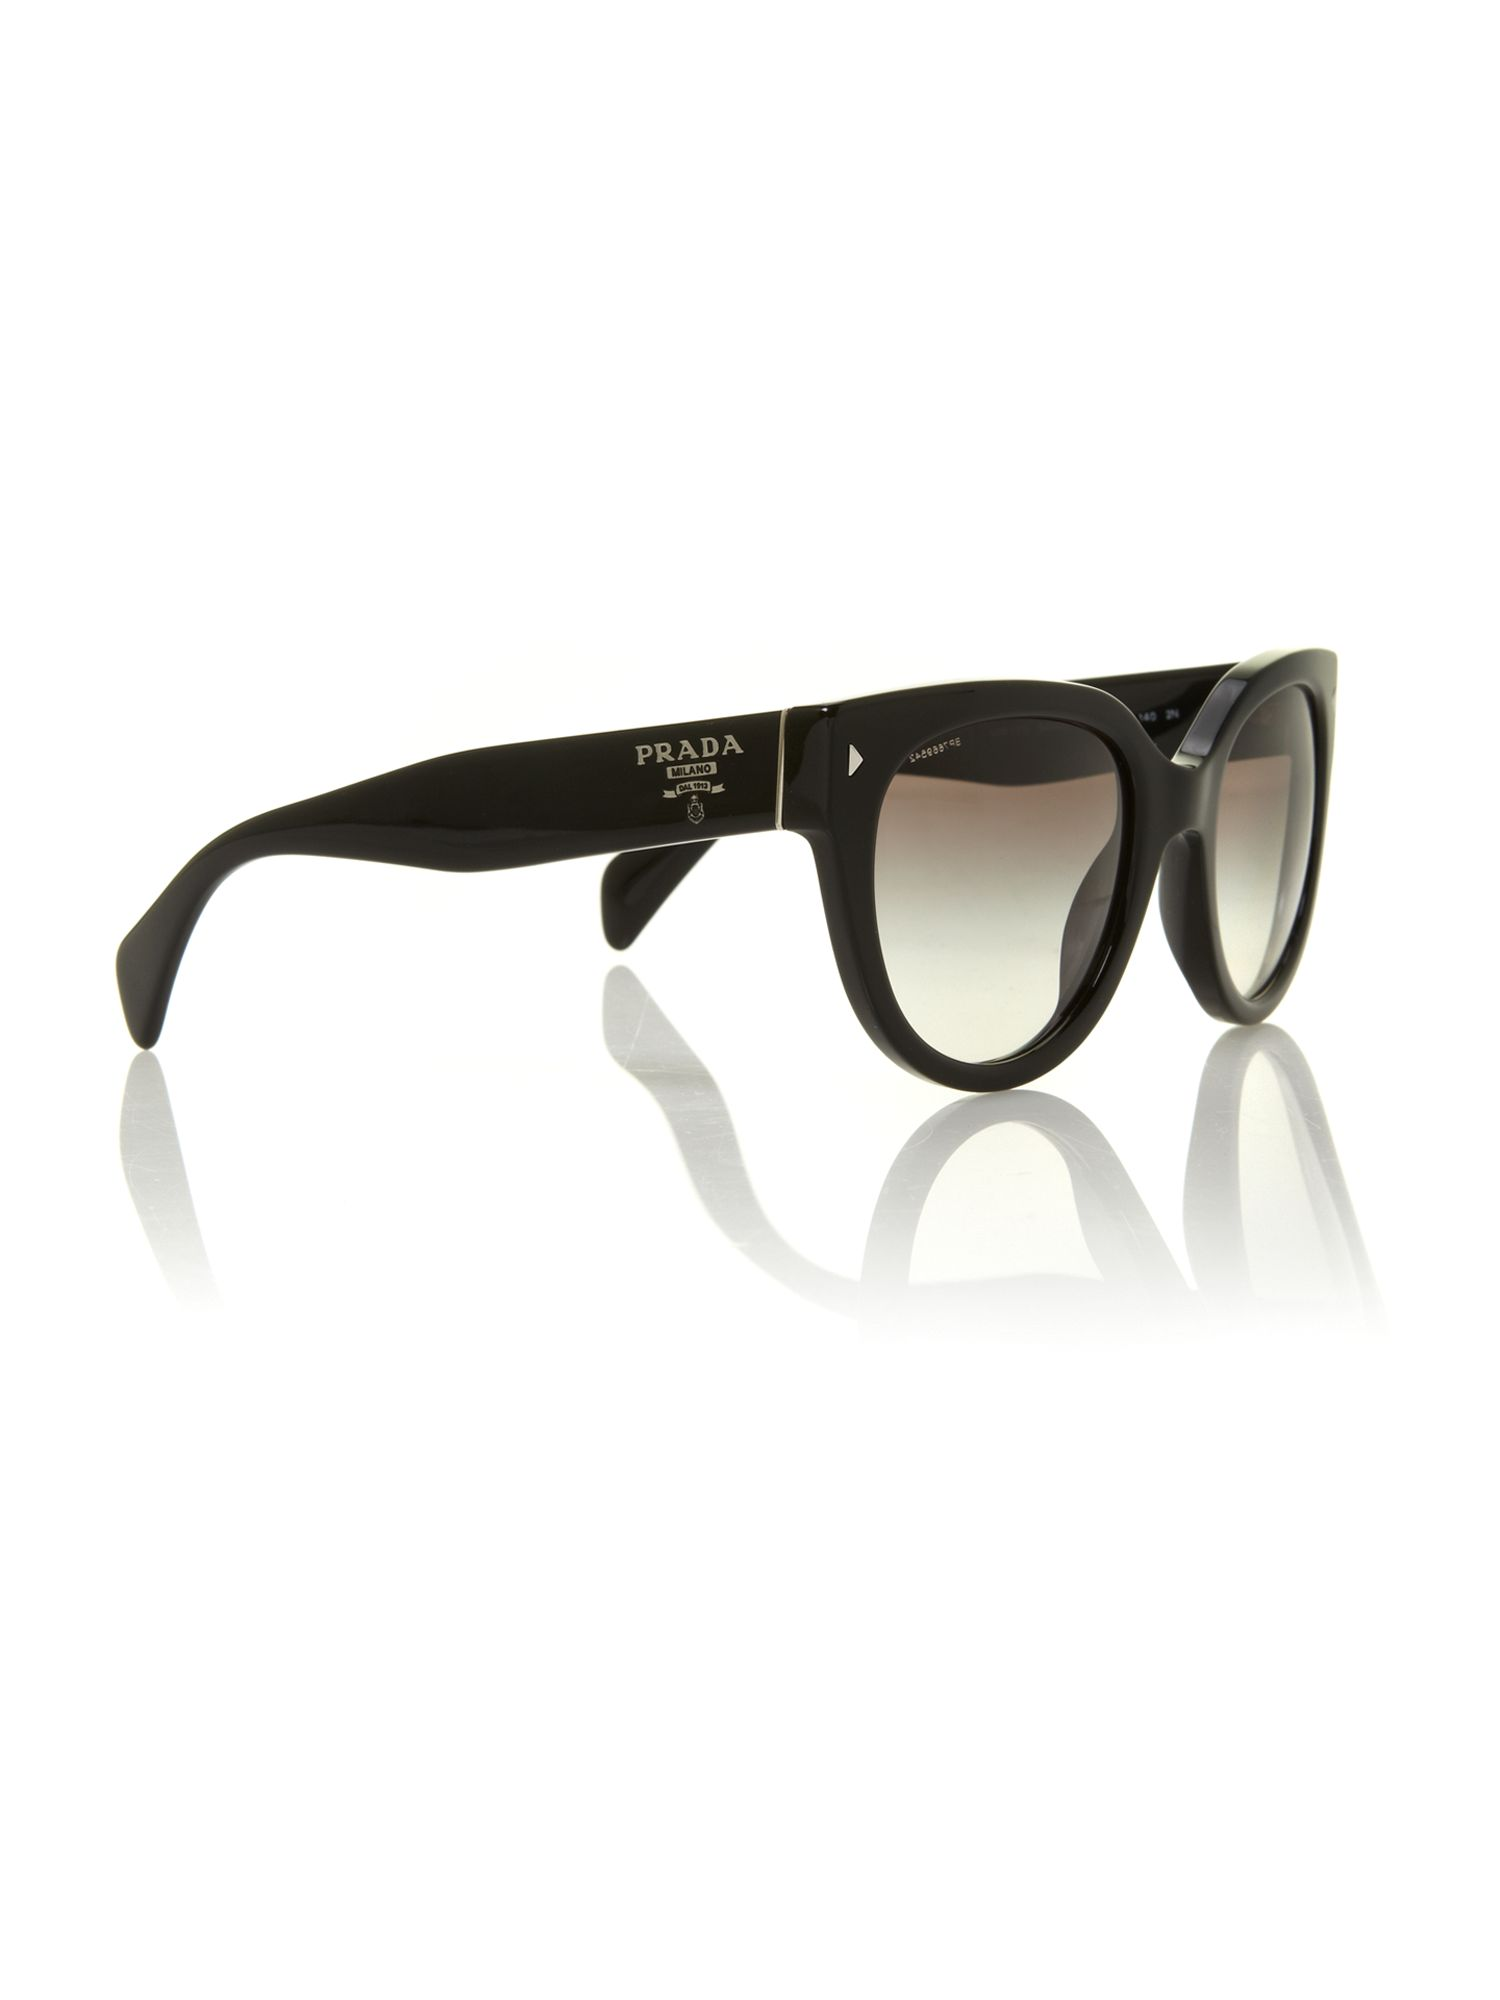 Ladies PR170S classic logo sunglasses